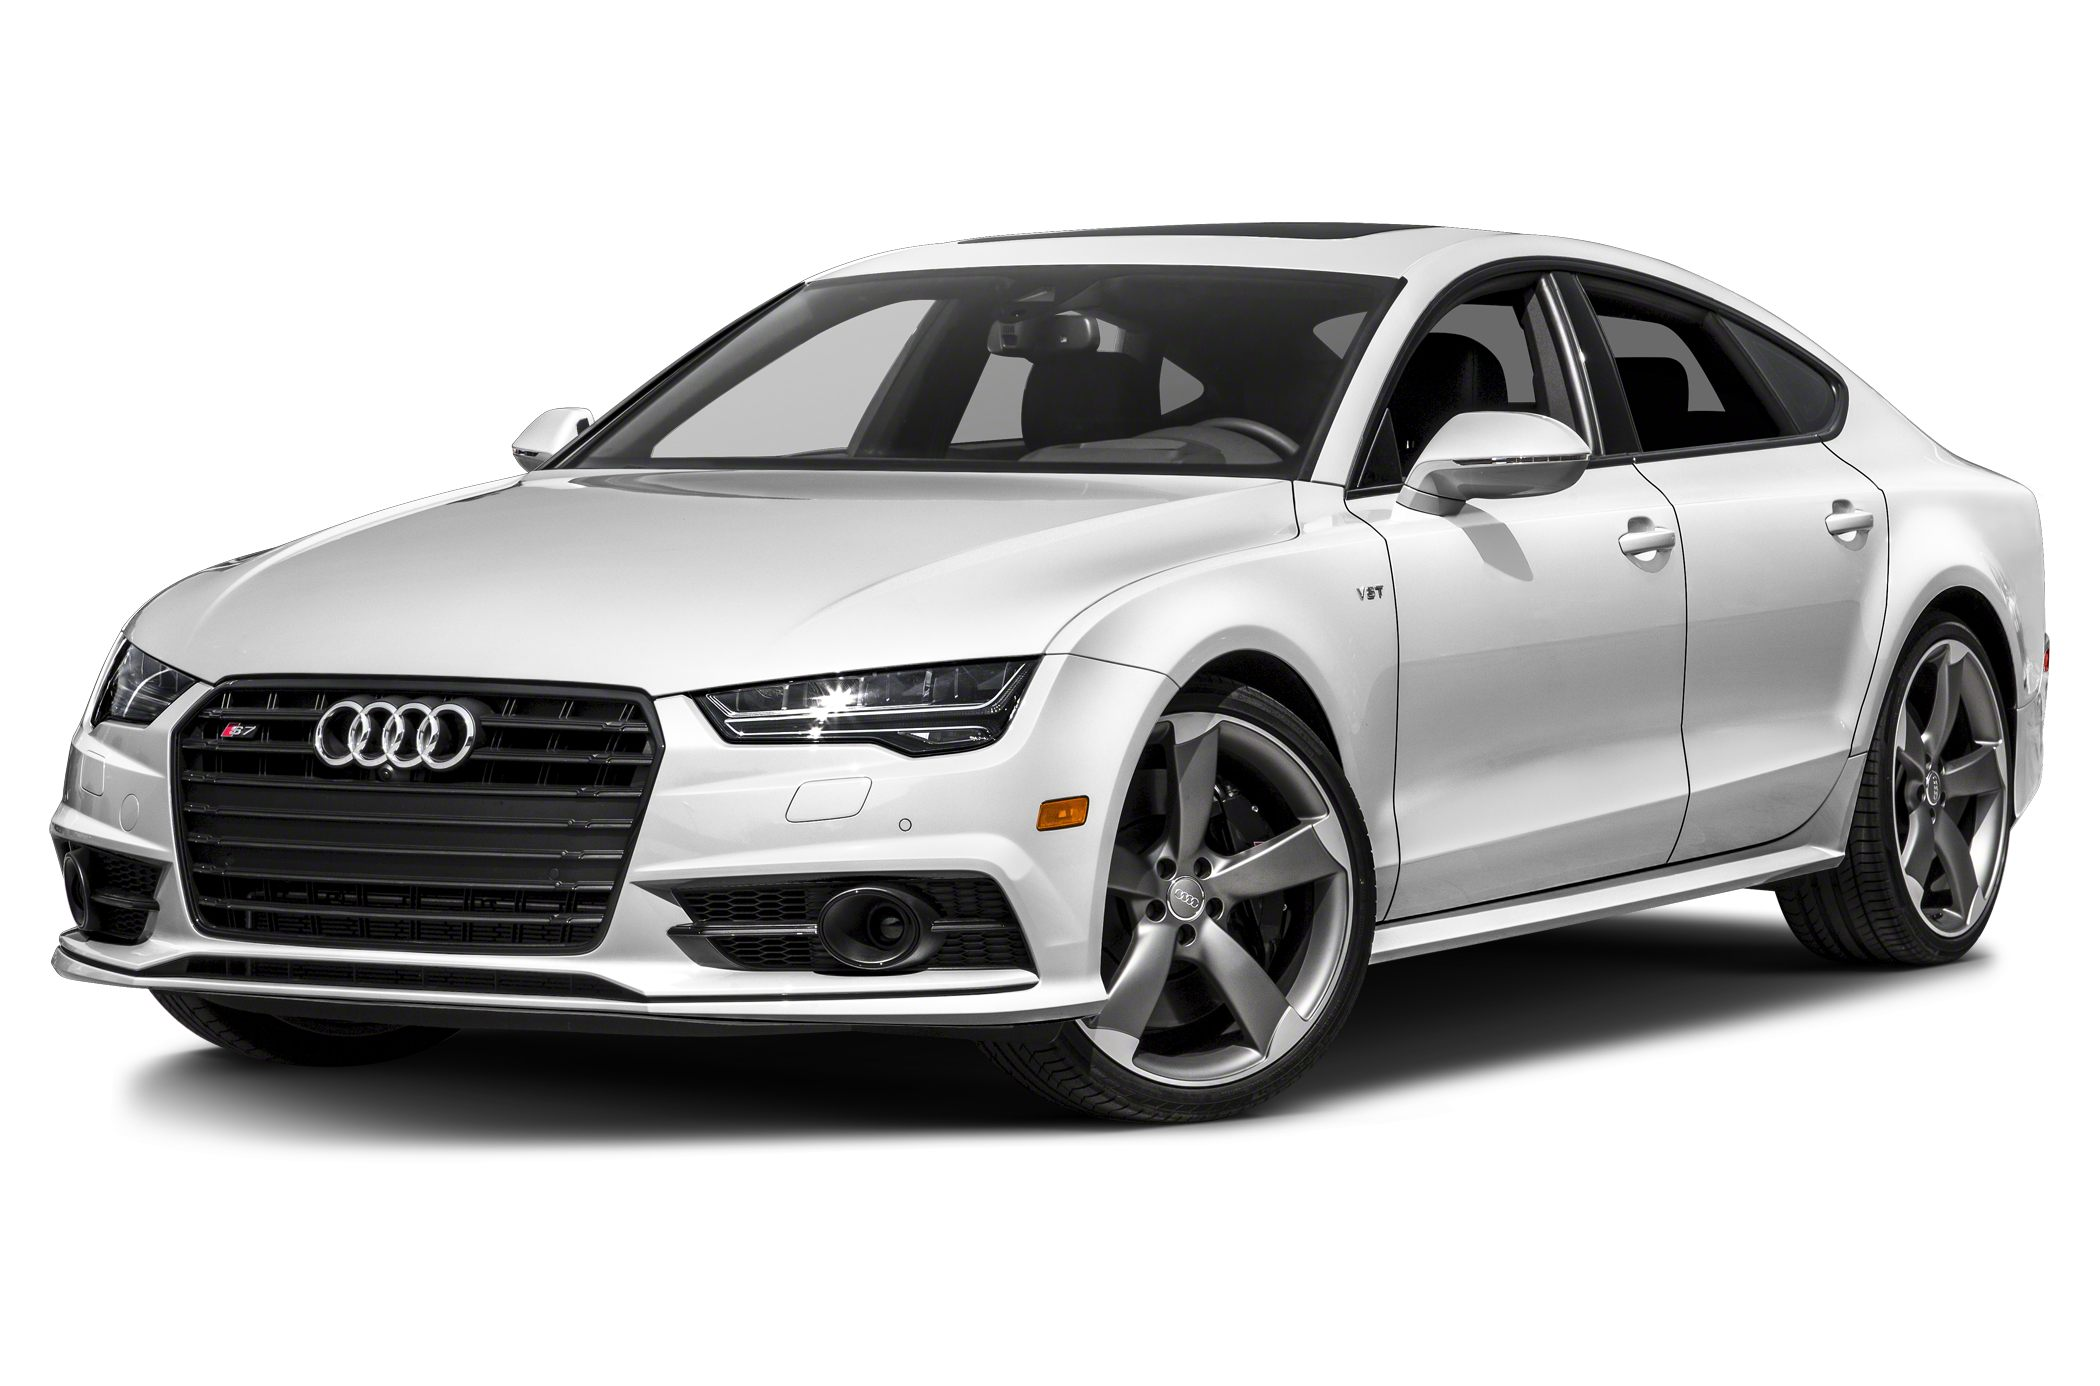 2016 audi rs7 performance la 2015 photo gallery autoblog. Black Bedroom Furniture Sets. Home Design Ideas